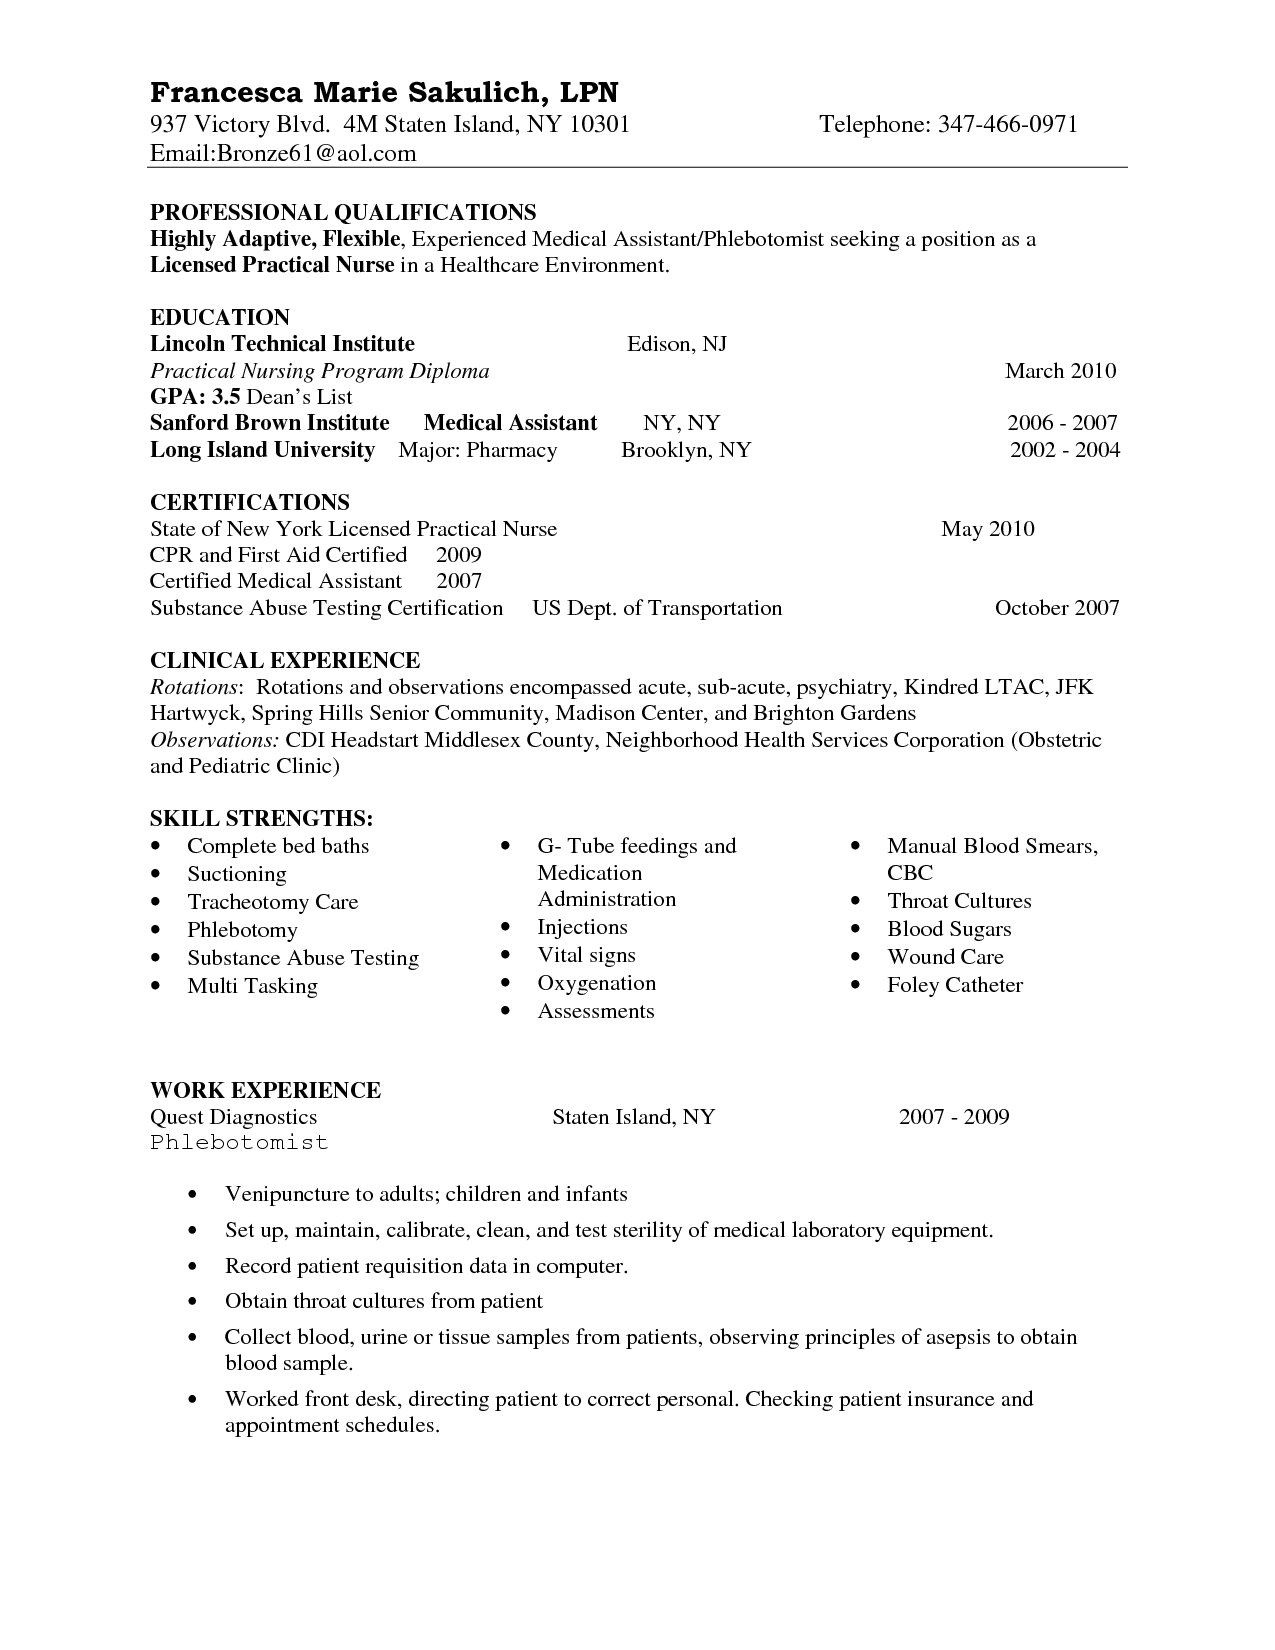 Professional Nursing Resume Entry Level Lpn Resume Sample  Nursing  Pinterest  Nursing